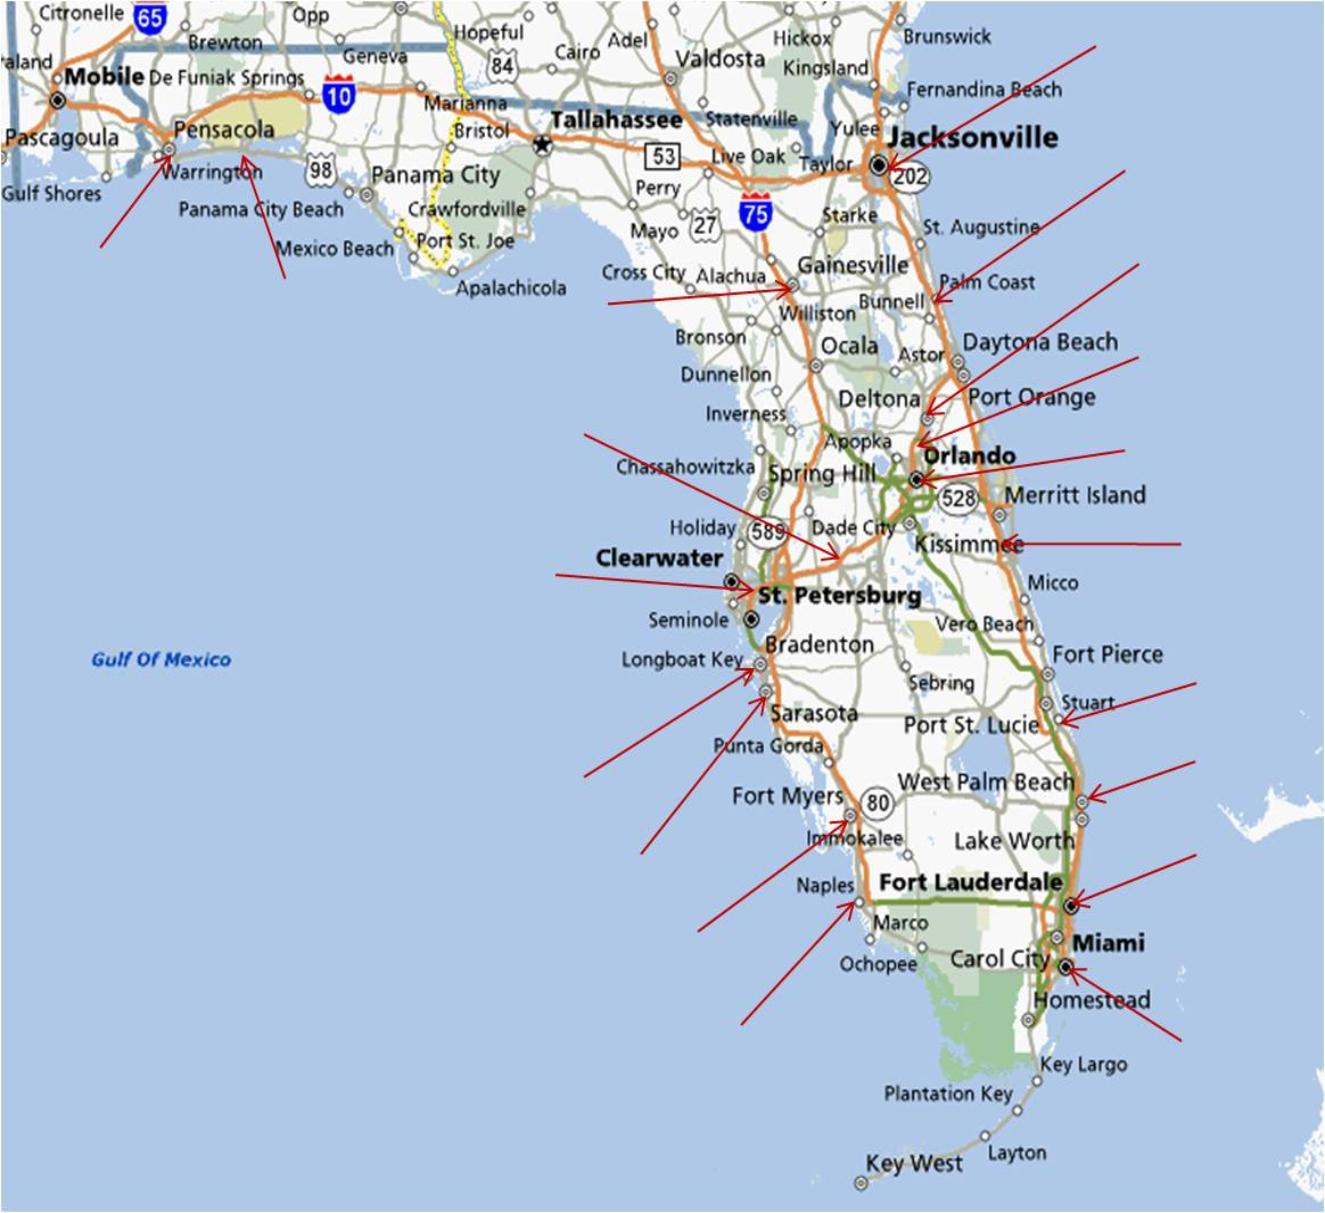 Map Of Florida Running Stores - Map Of Palm Coast Florida Area